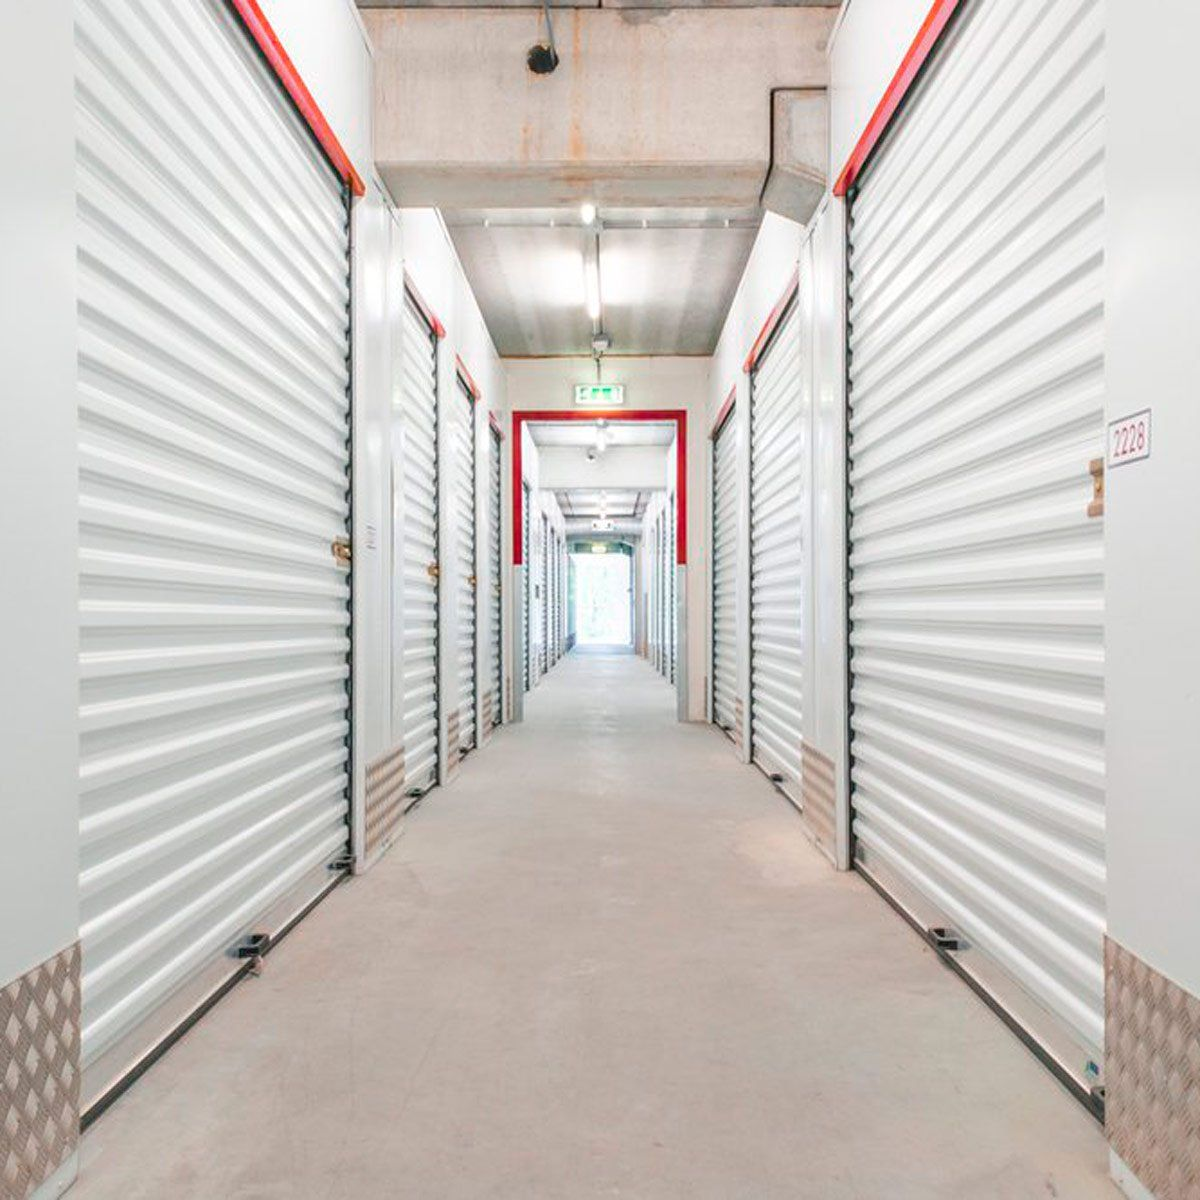 10 Things You Should Never Keep In A Storage Unit Storage Unit Storage Unit Organization The Unit